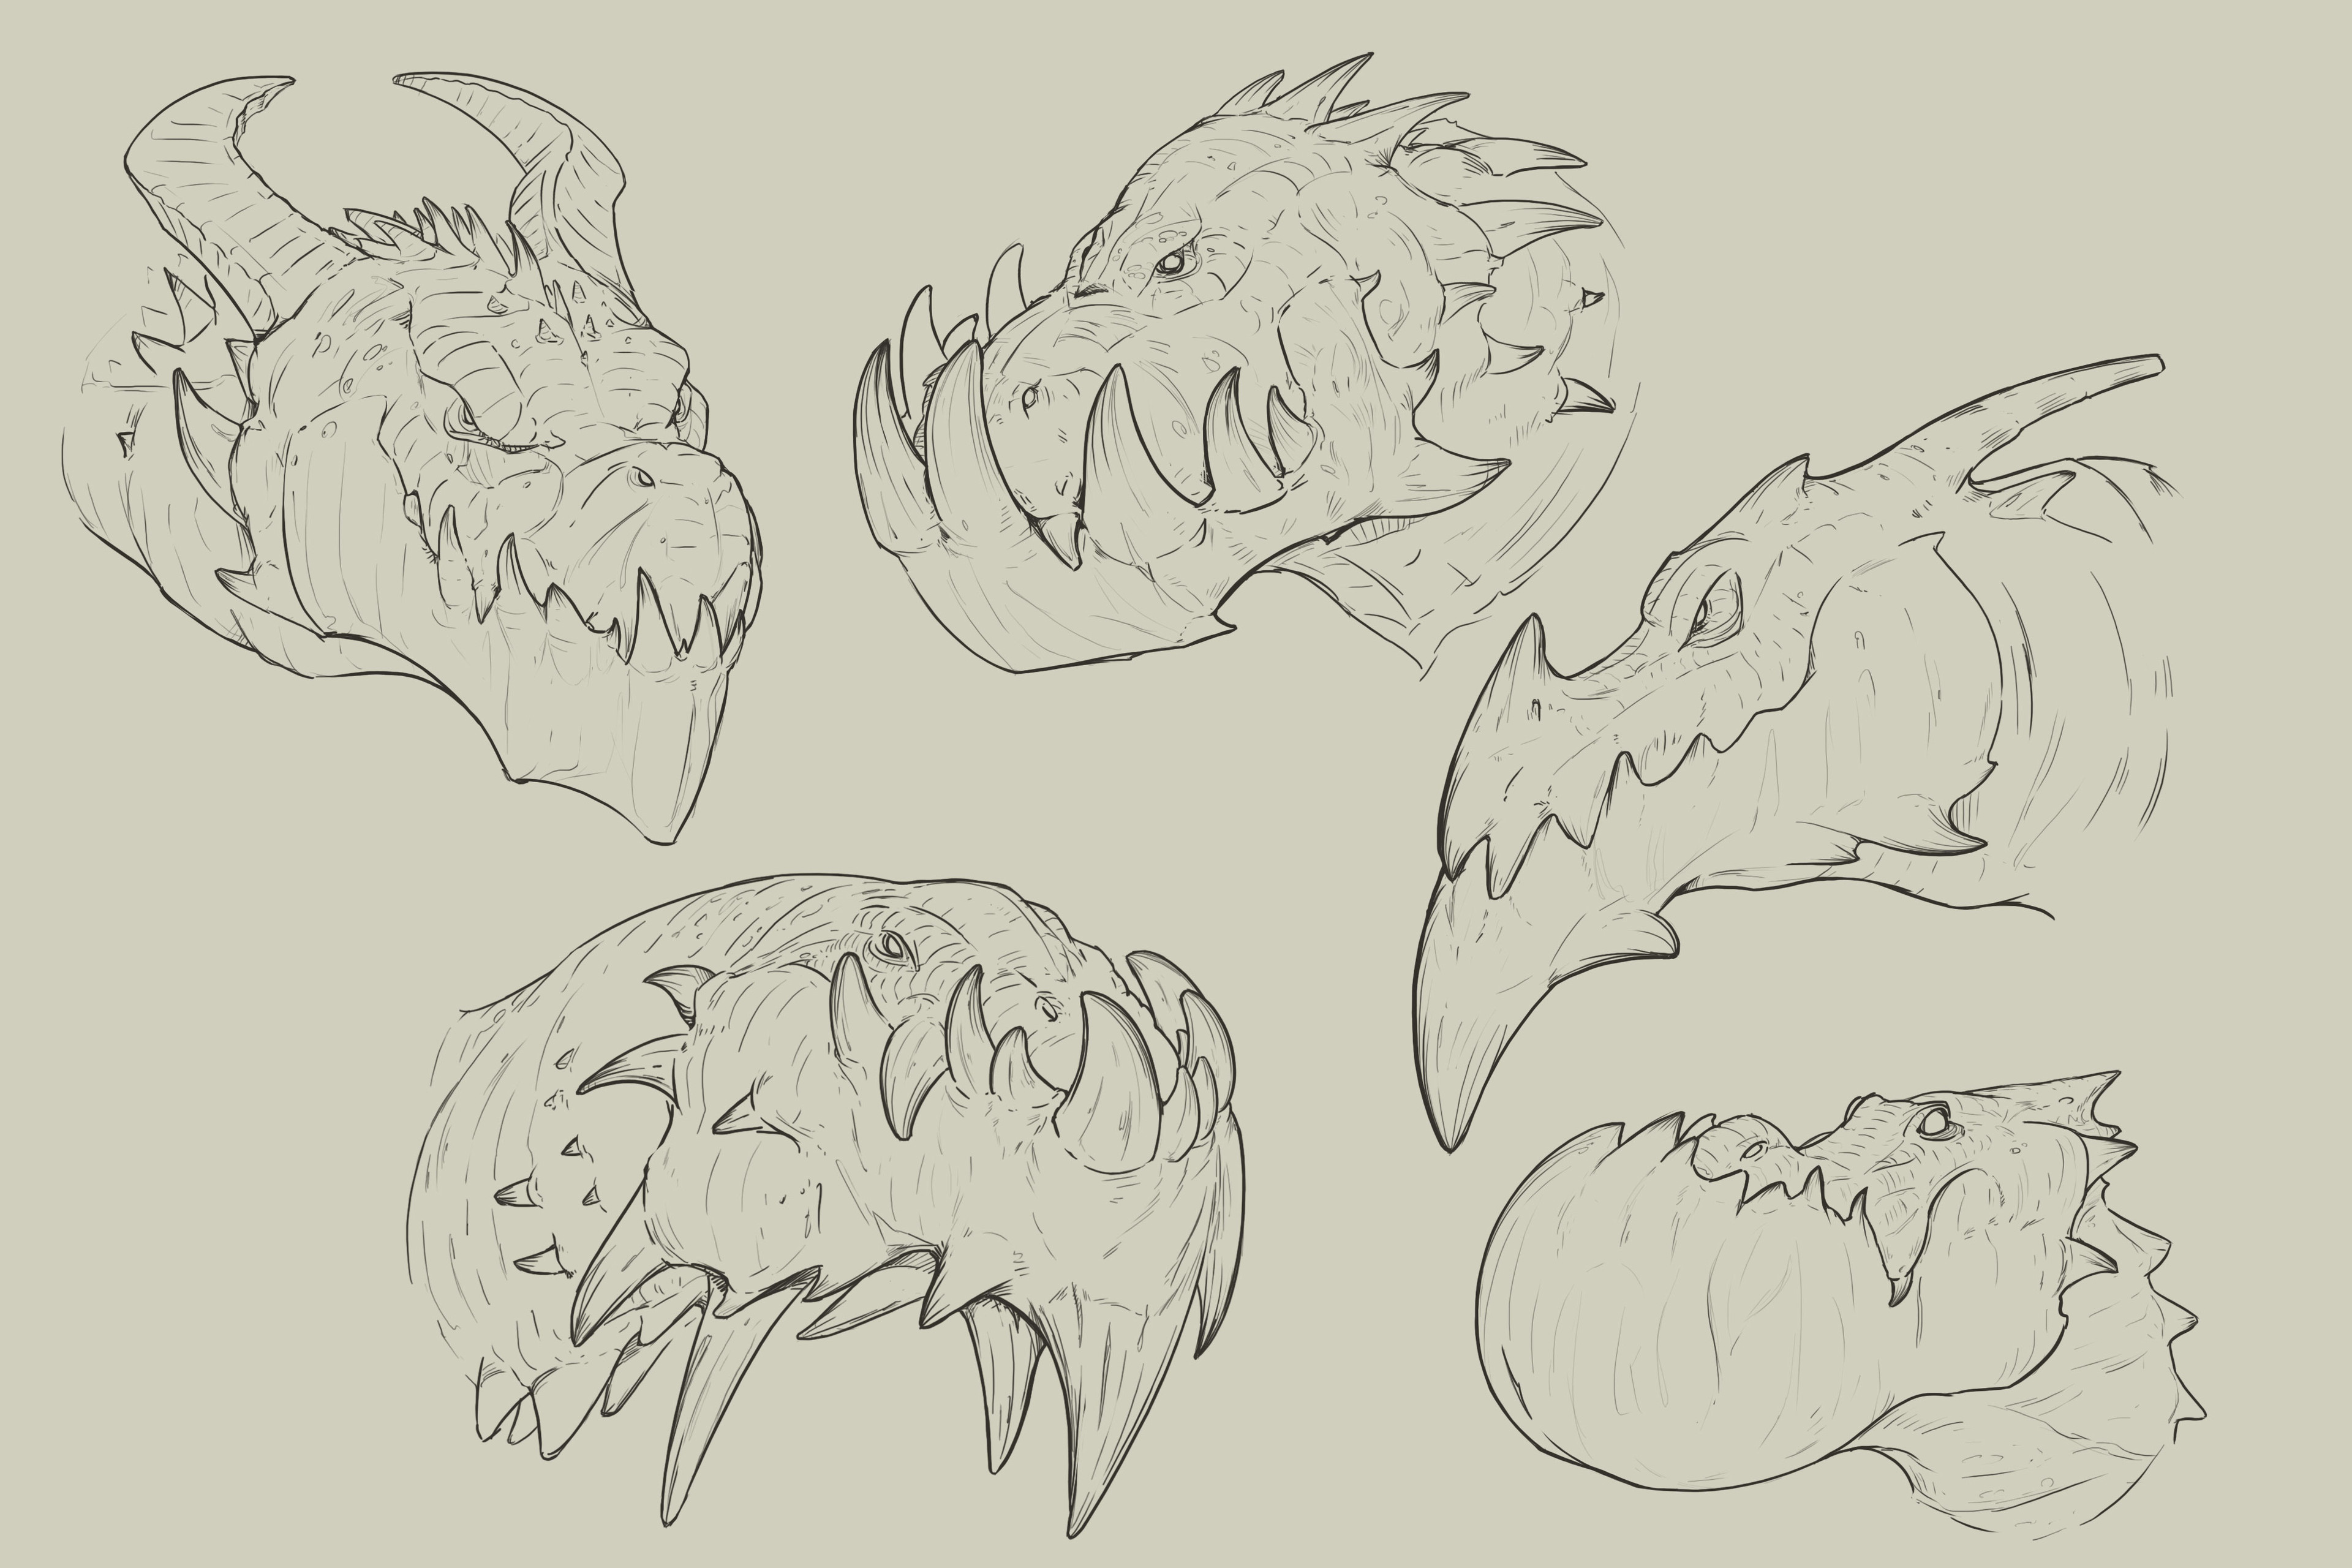 Some dragon heads exploration that triggered the main idea.